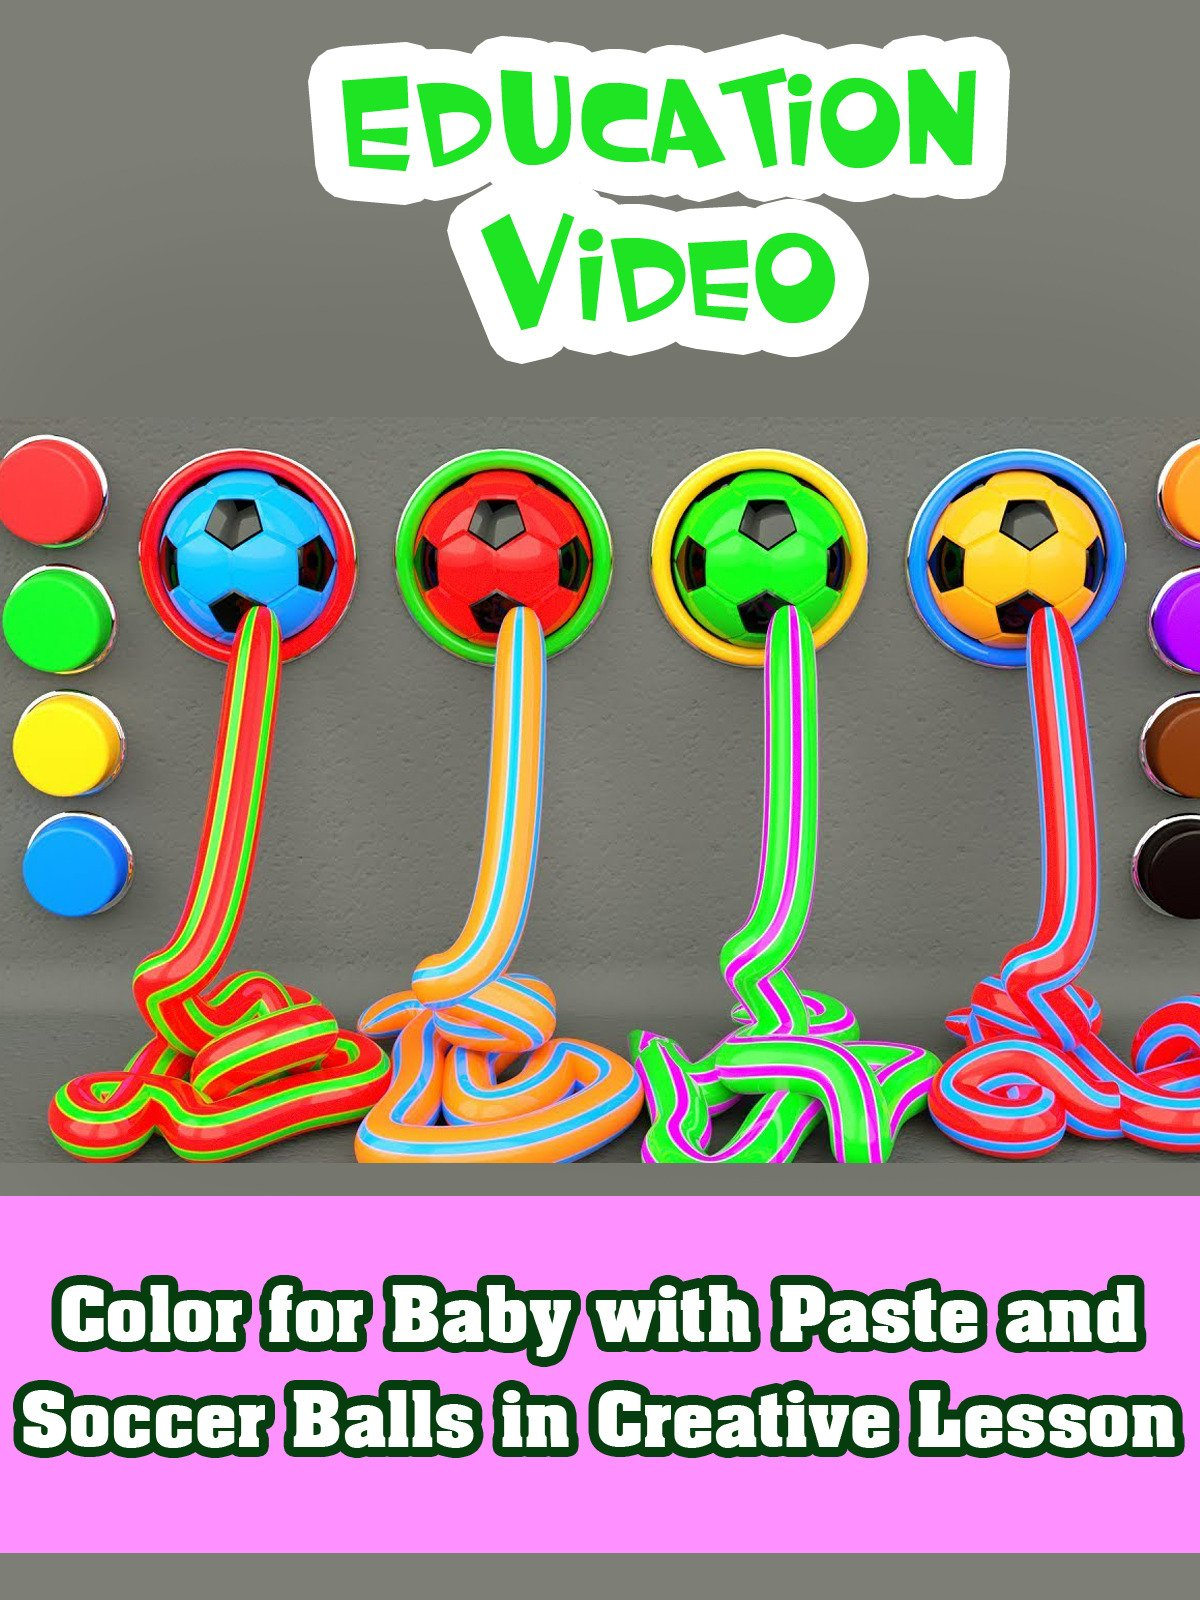 Color for Baby with Paste and Soccer Balls in Creative Lesson